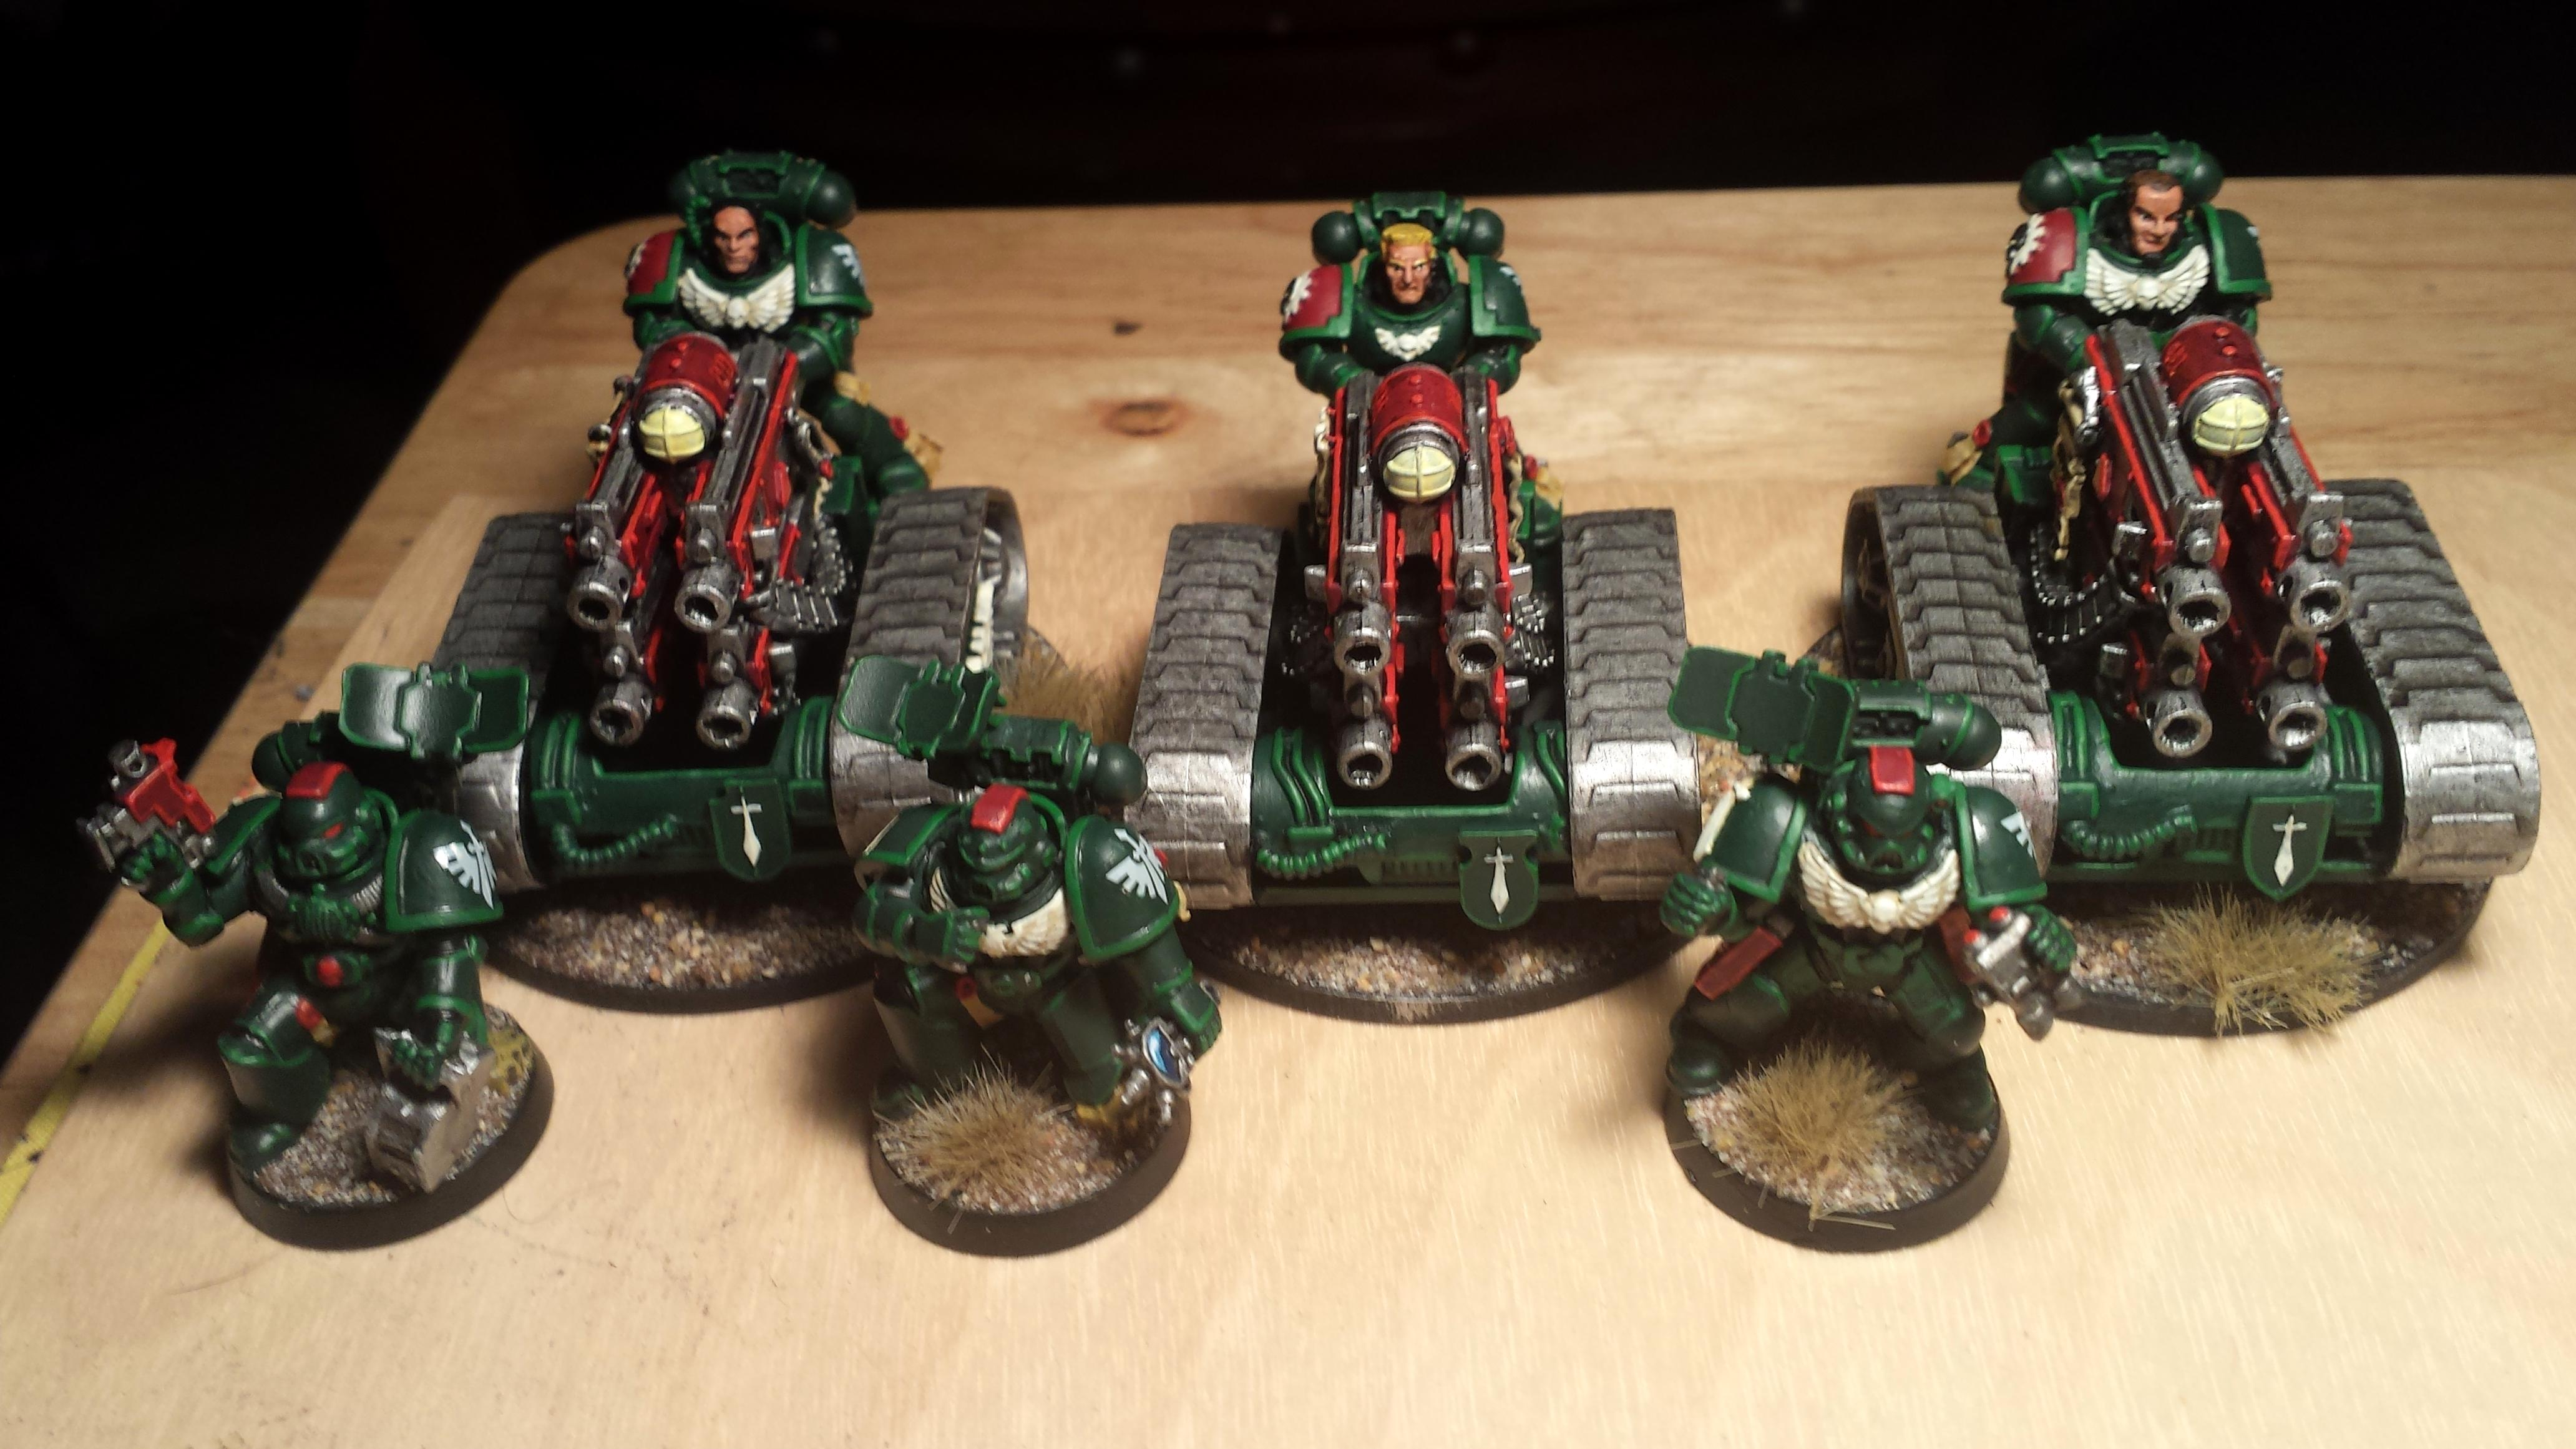 Battery, Budget, Dark Angels, Rapier, Warhammer 40,000